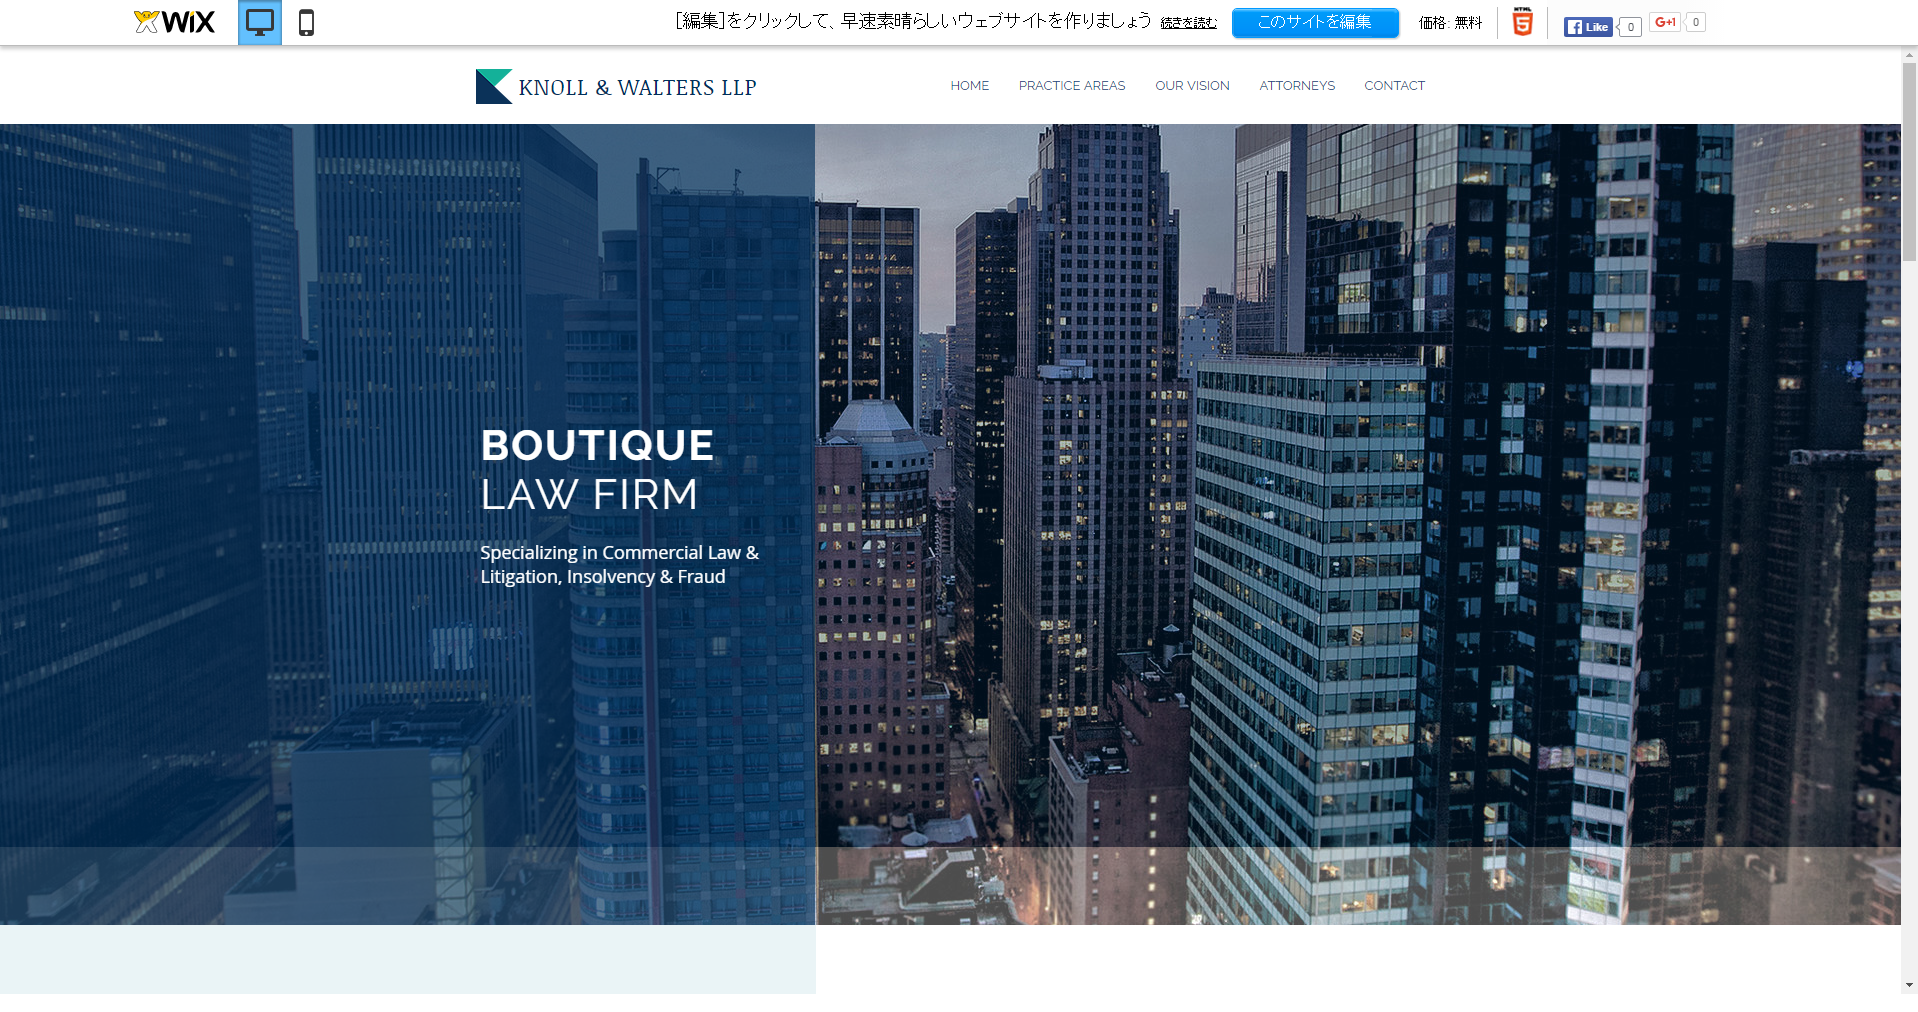 FireShot Capture 23 - Boutique Law Firm テンプレート _ - http___ja.wix.com_website-template_view_html_1723